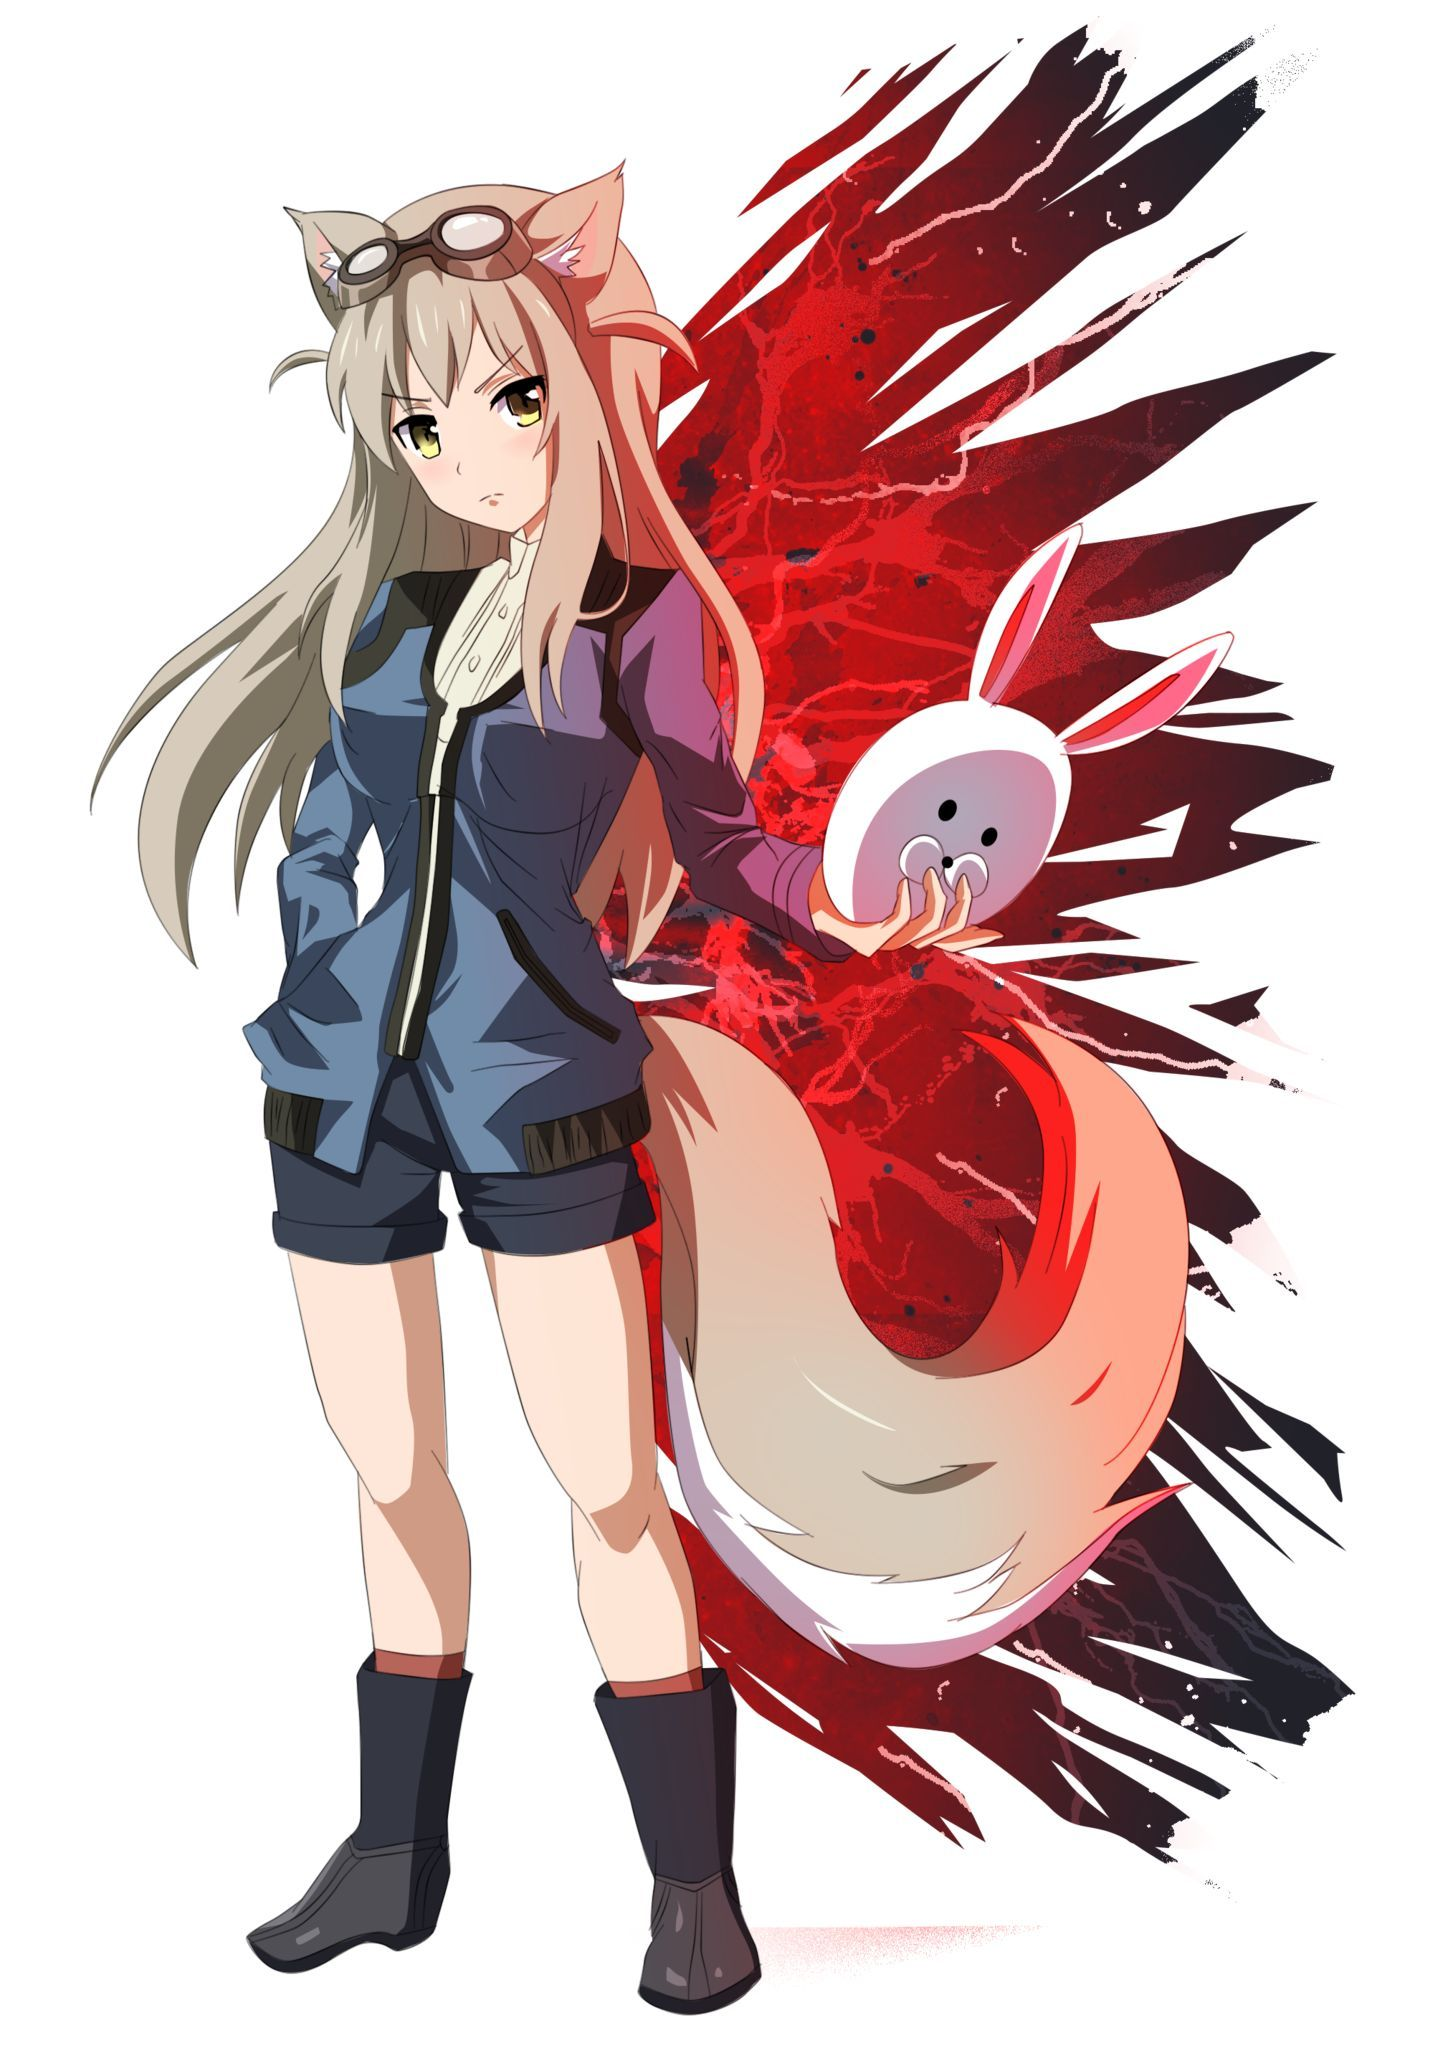 Exclusive Lost Pause Sticker Anime Anime Art Beautiful Anime Wolf